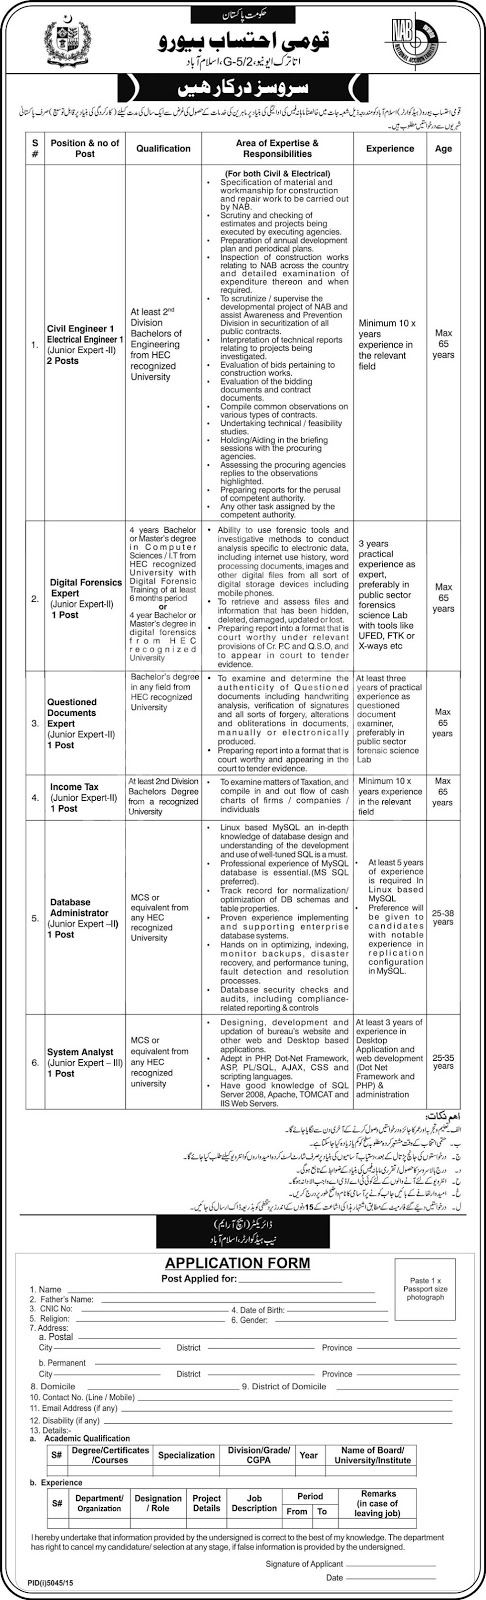 ational Accountability Bureau, Islamabad March Latest Nab Jobs